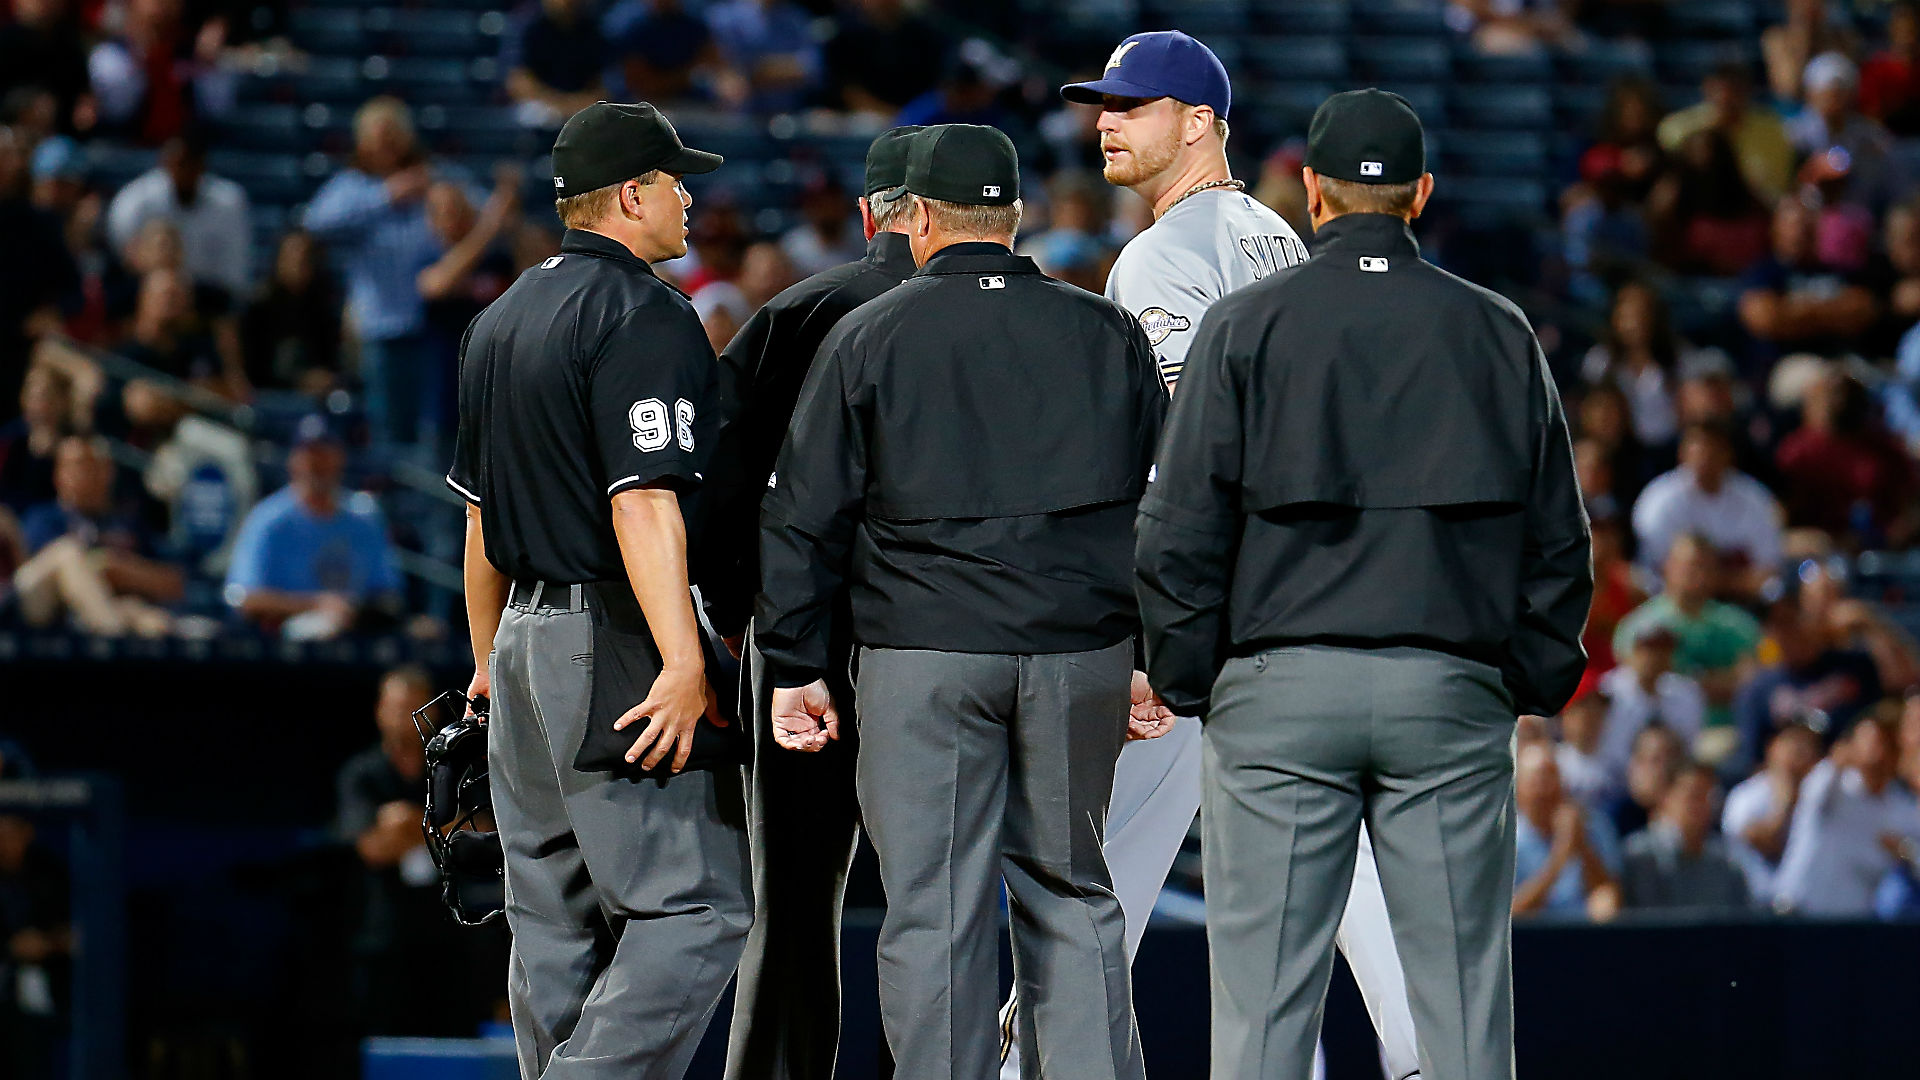 Brewers pitcher Will Smith's suspension puts baseball's unwritten rules in a sticky situation